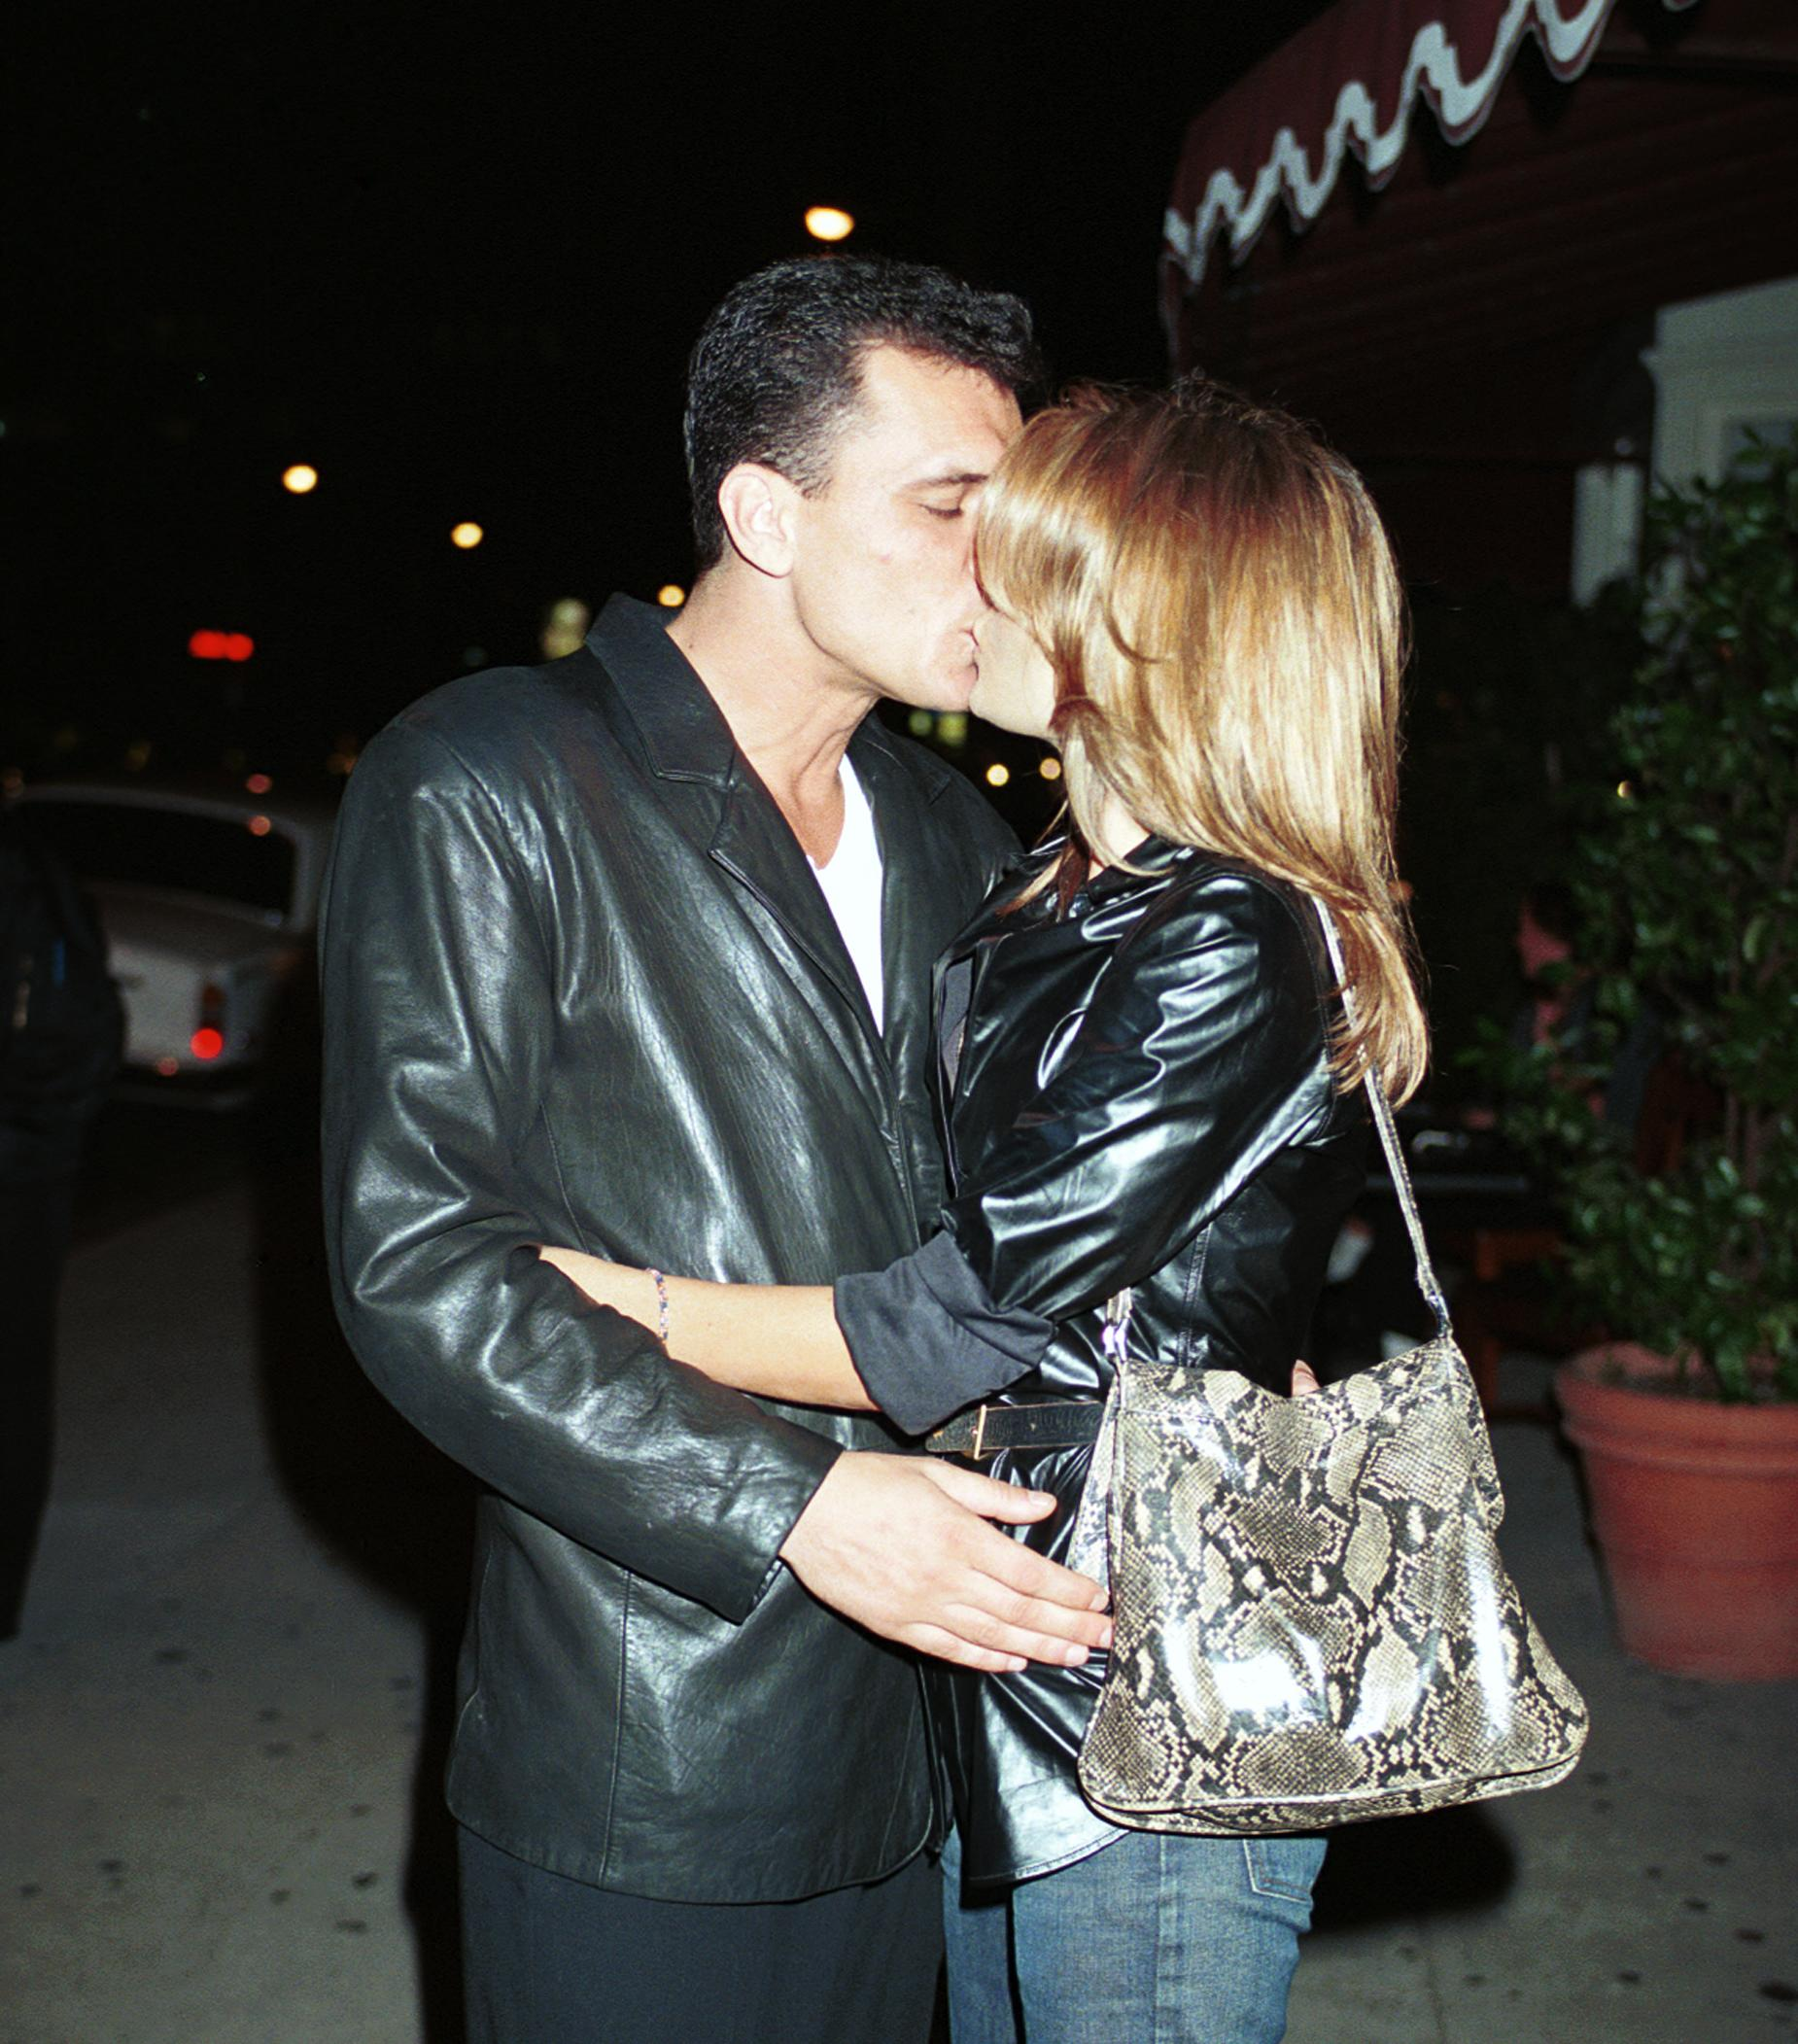 Tahnee Welch Plants A Kiss On Her Boyfriend Luca Palanca Outside Of The Atlantic Restaurant. | Source: Getty Images